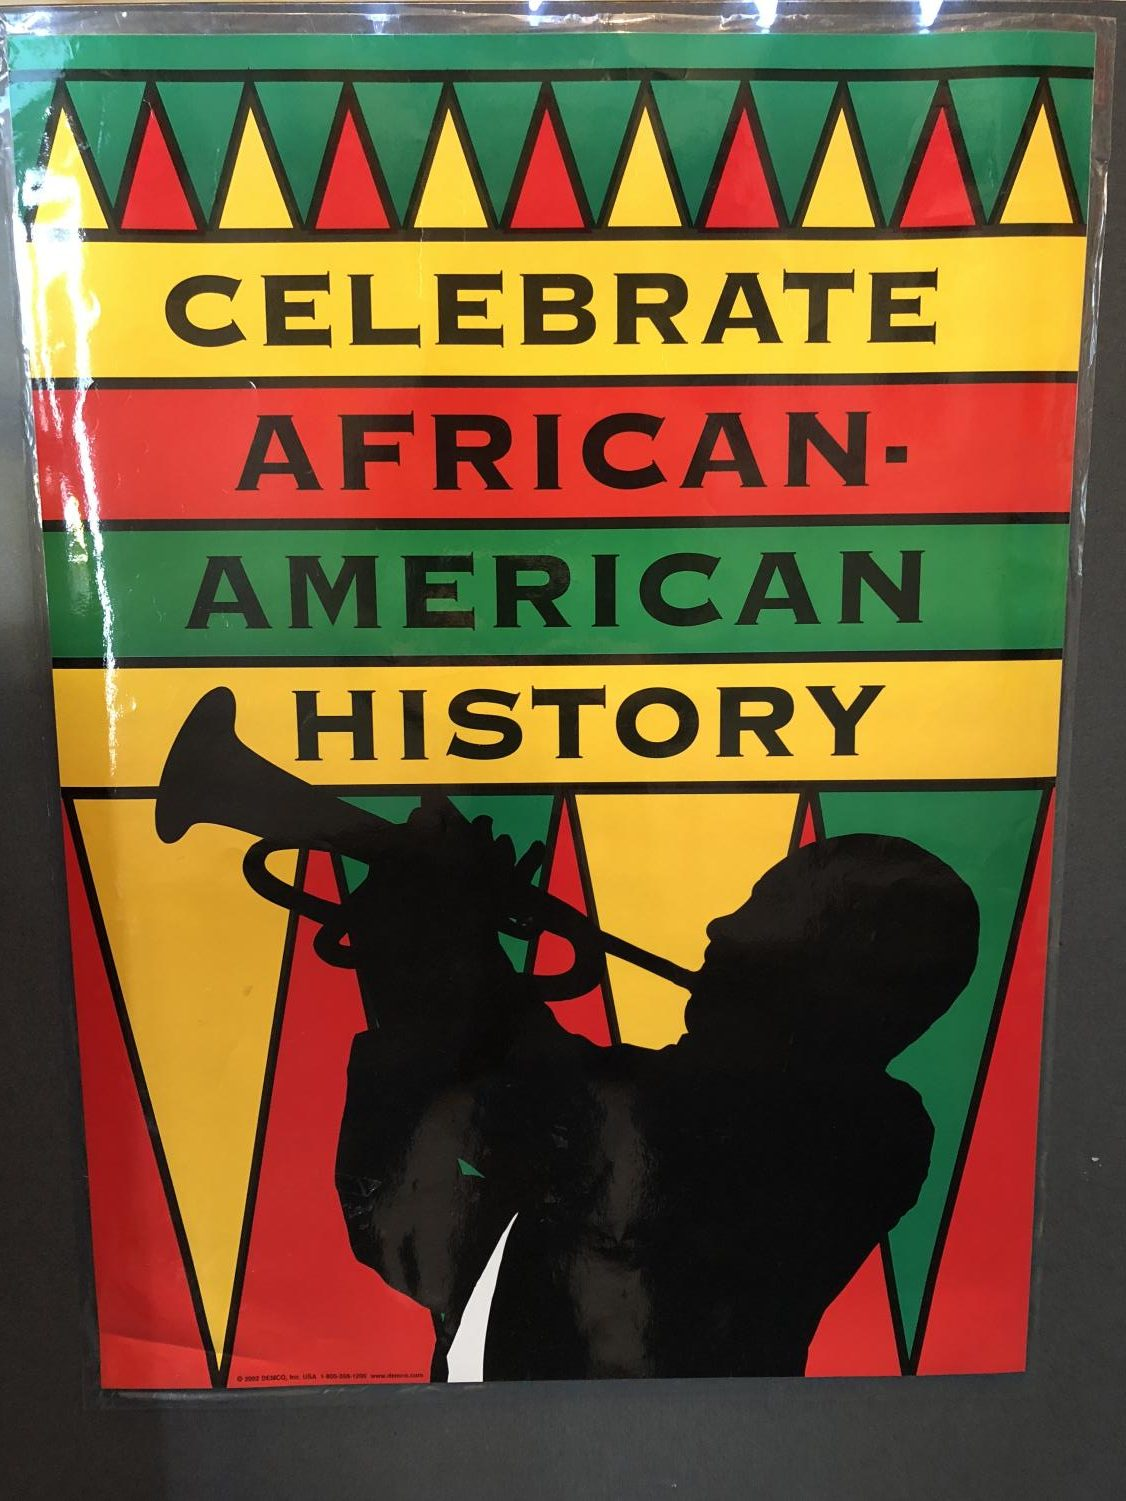 Many students and teachers have come together in order to recognize Black History Month within the school.